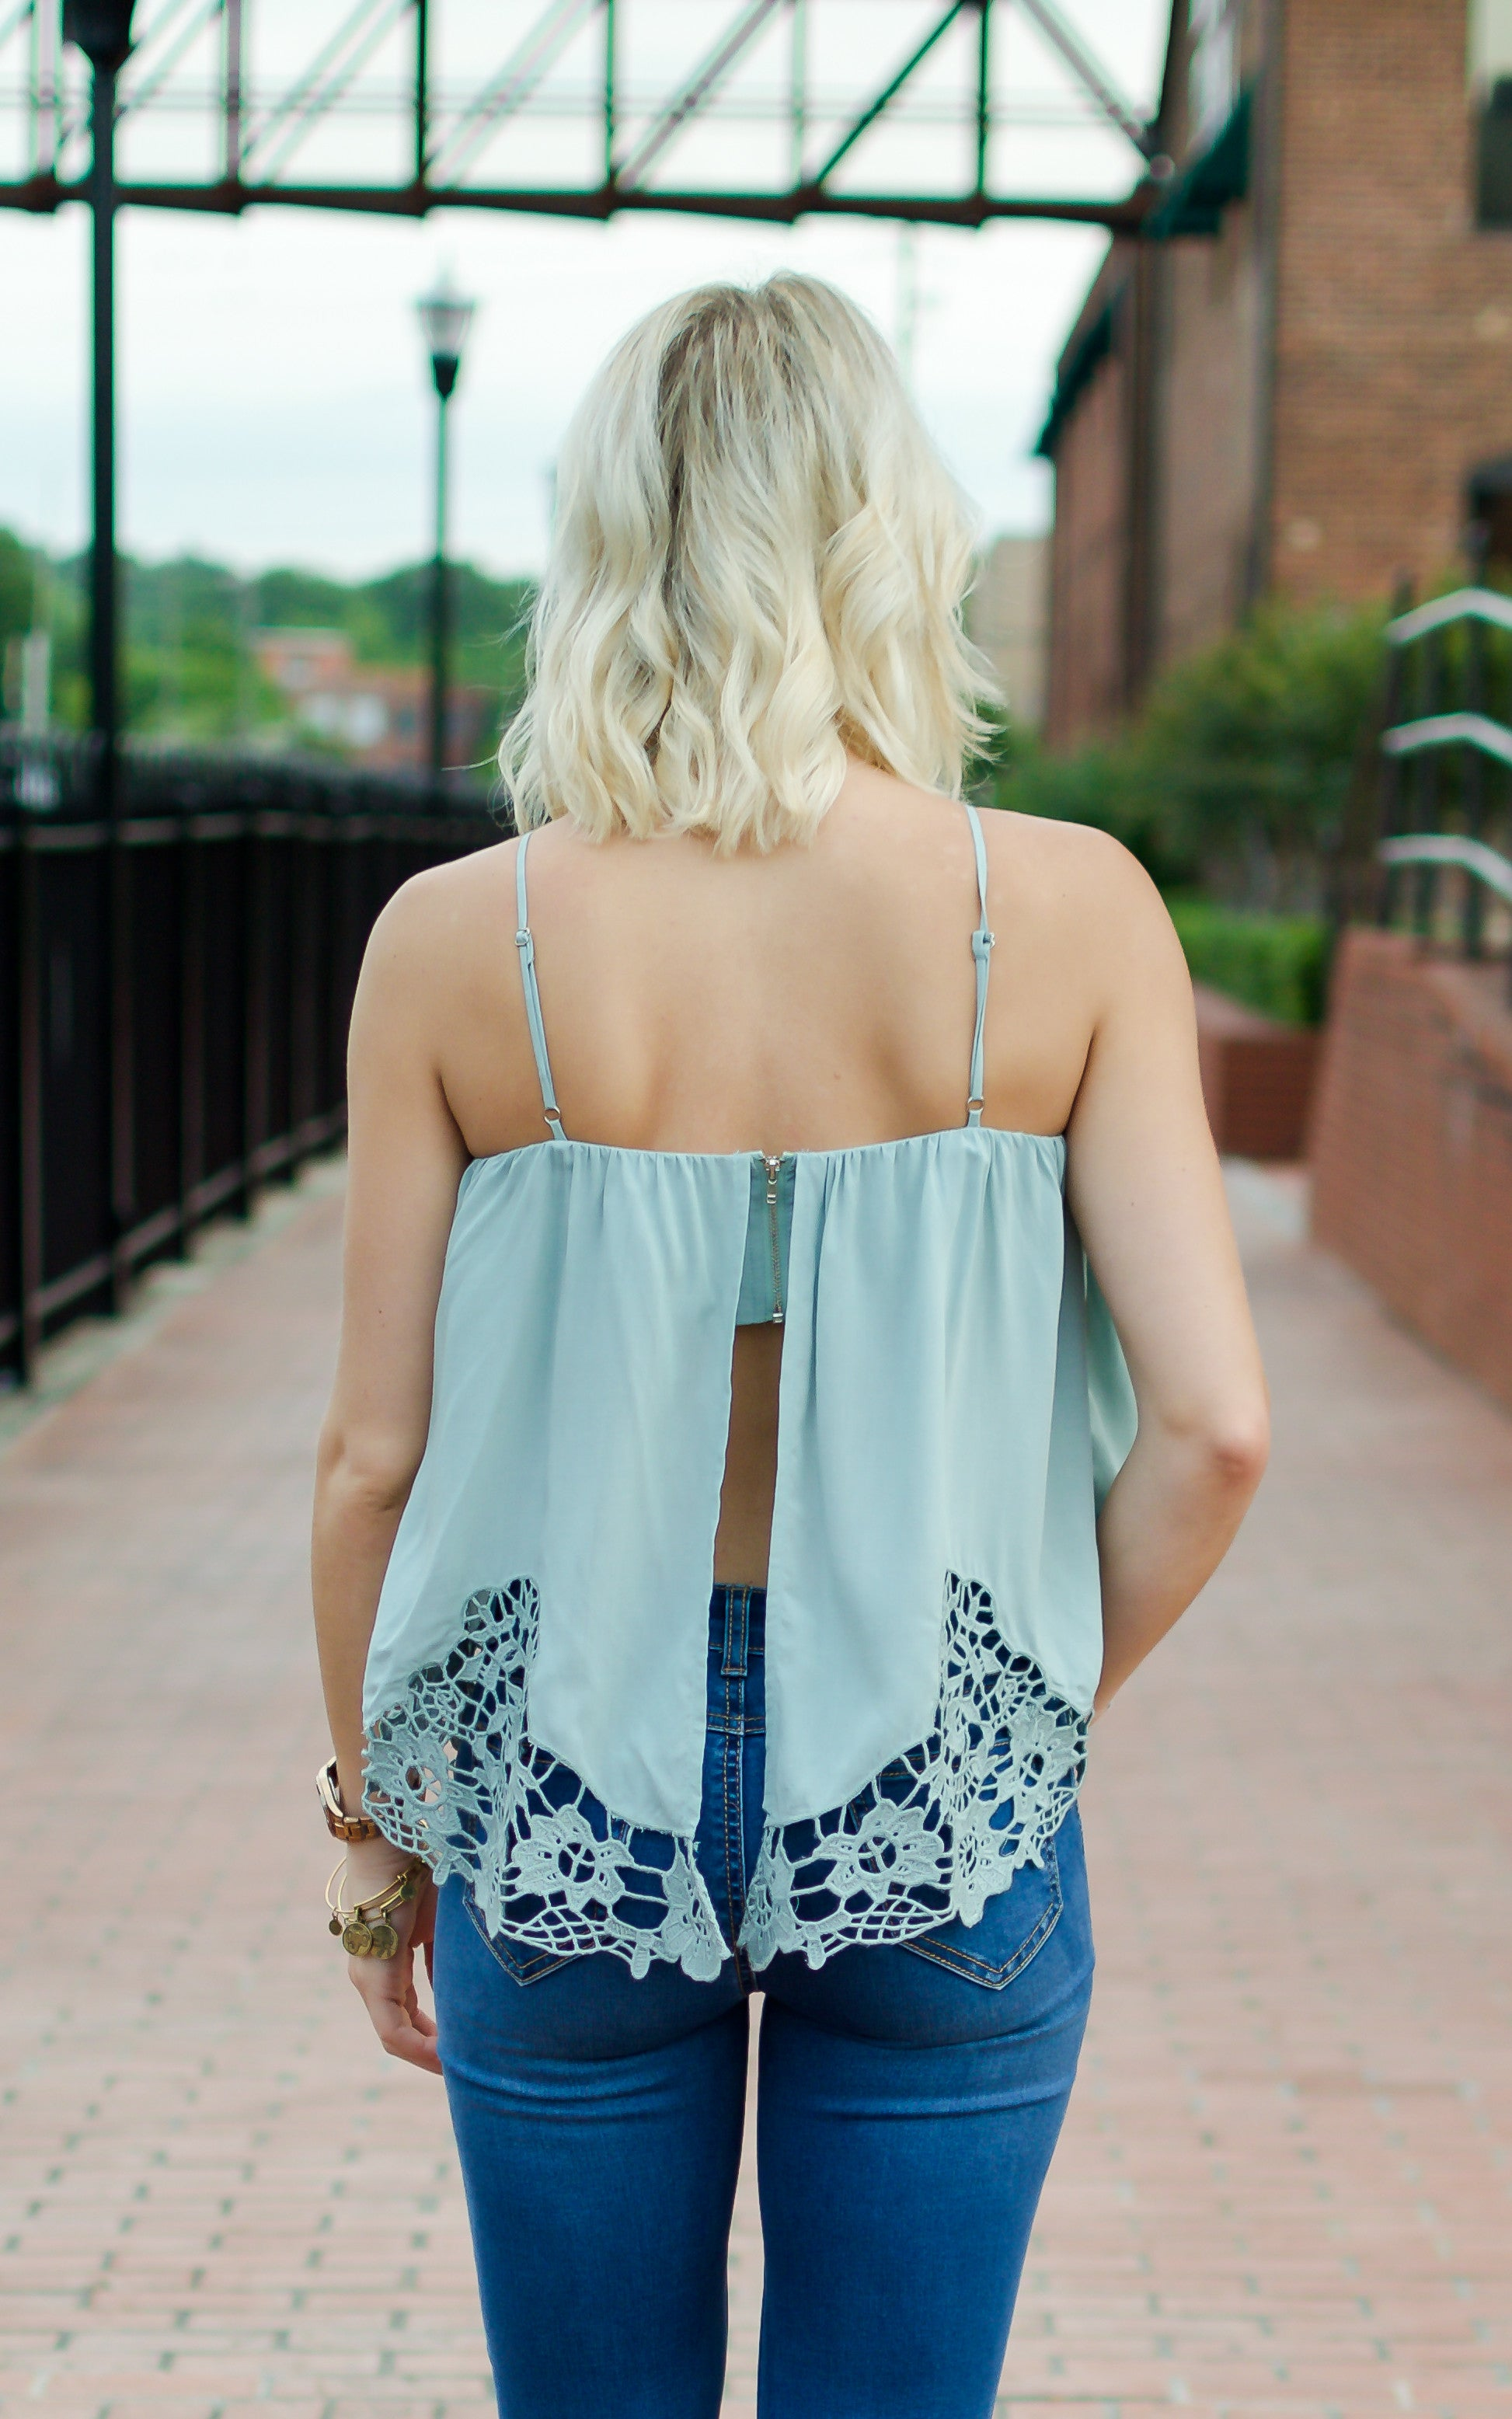 Hopelessly Devoted Embroidered Top - Dawn and Rae Boutique